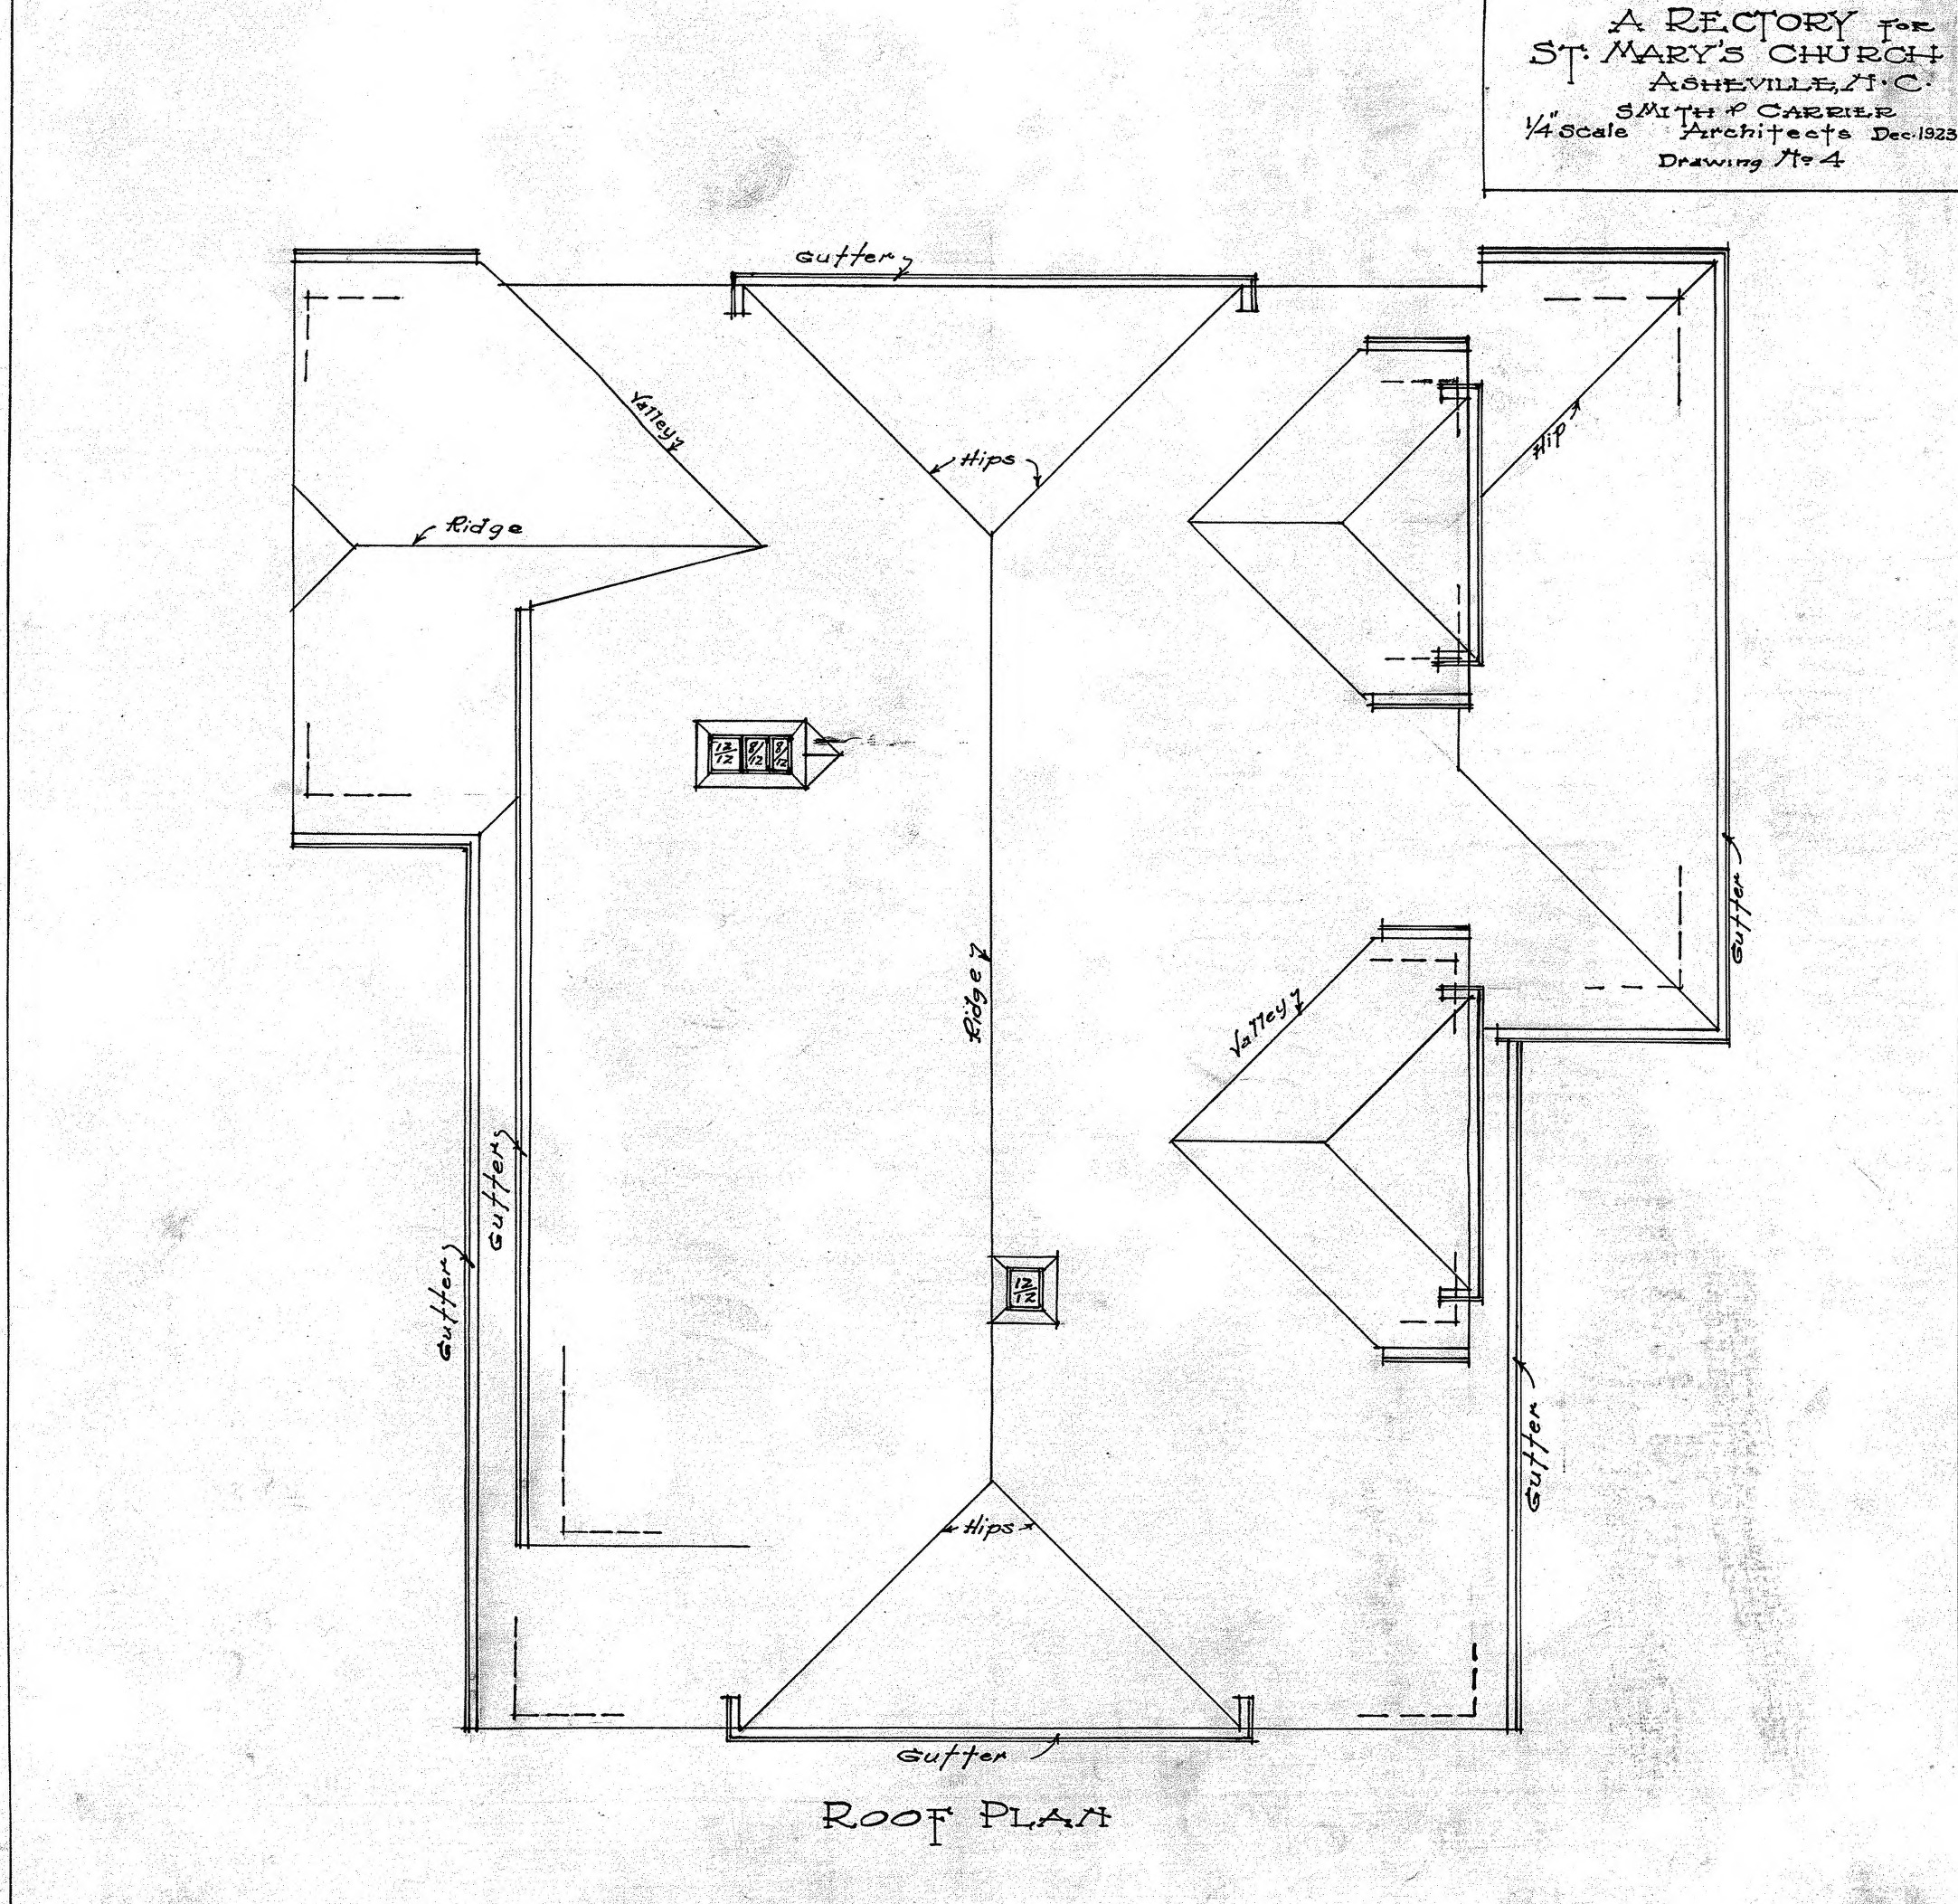 A rectory for st mary s church roof plan drawing no for Roof plan drawing